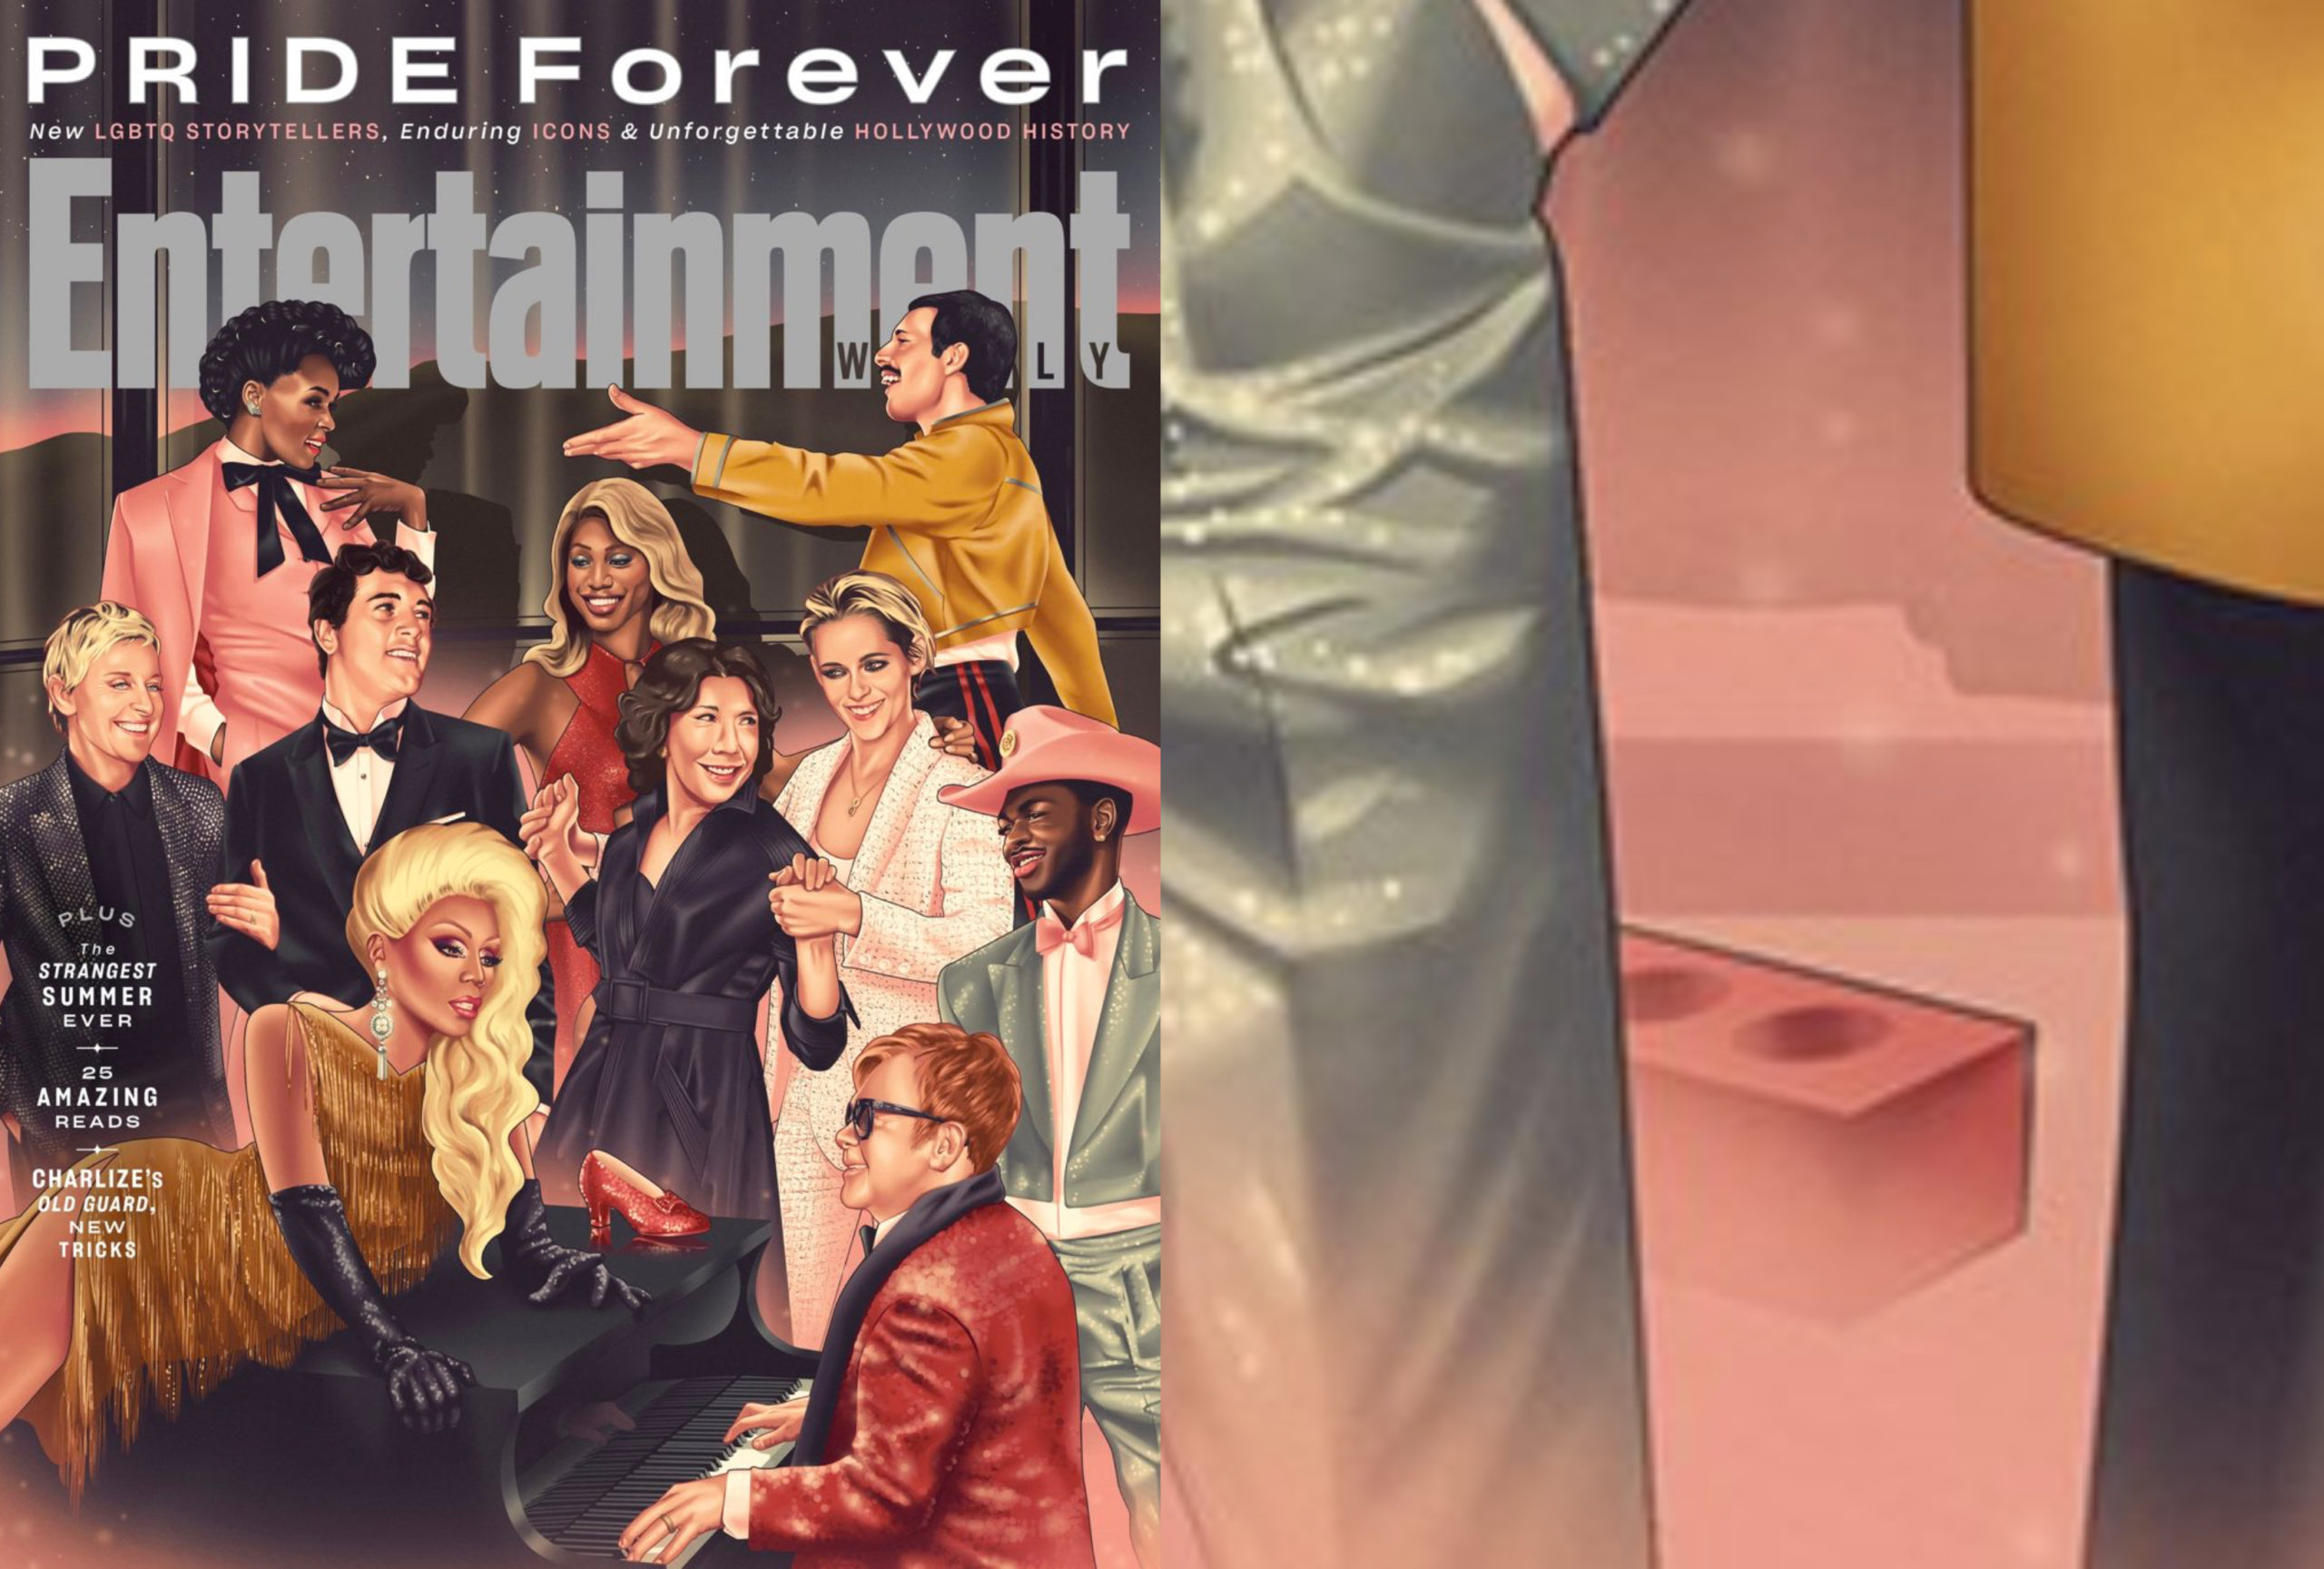 Entertainment Weekly put the 'first brick thrown at Stonewall' on its Pride cover and people have thoughts – lots of thoughts